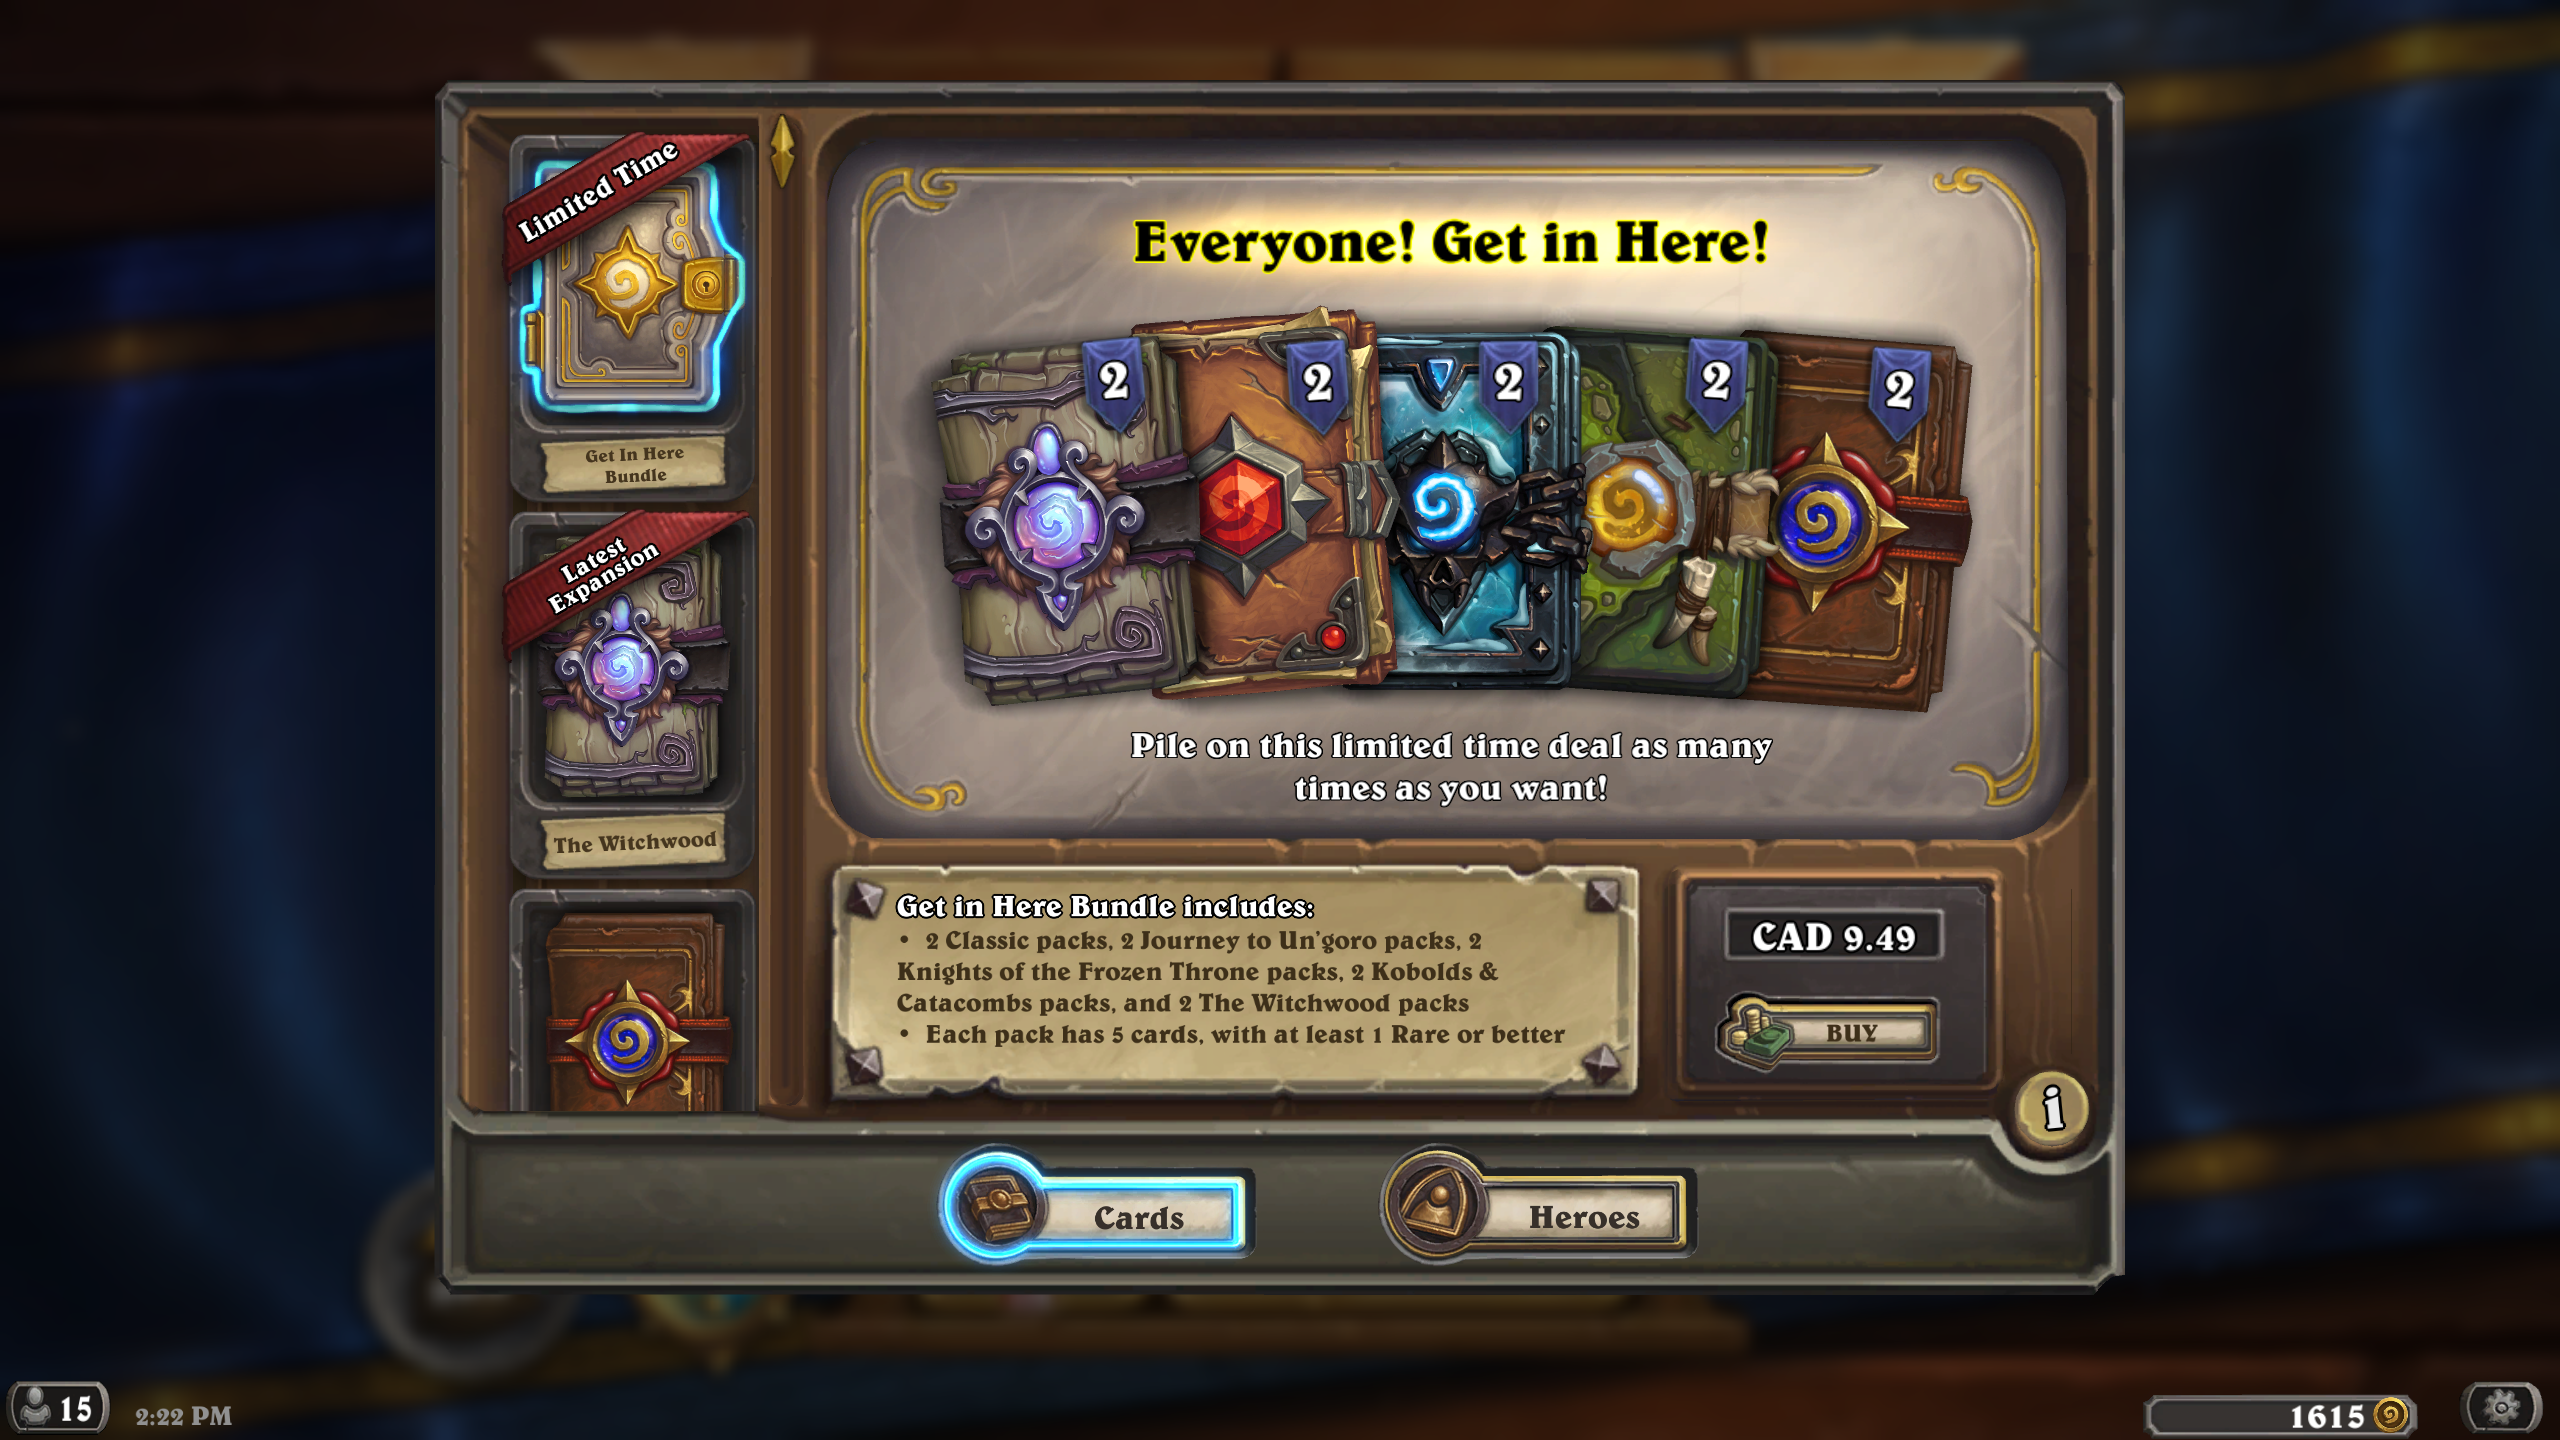 hearthstone patch 11 2 taverns of time event new bundles free